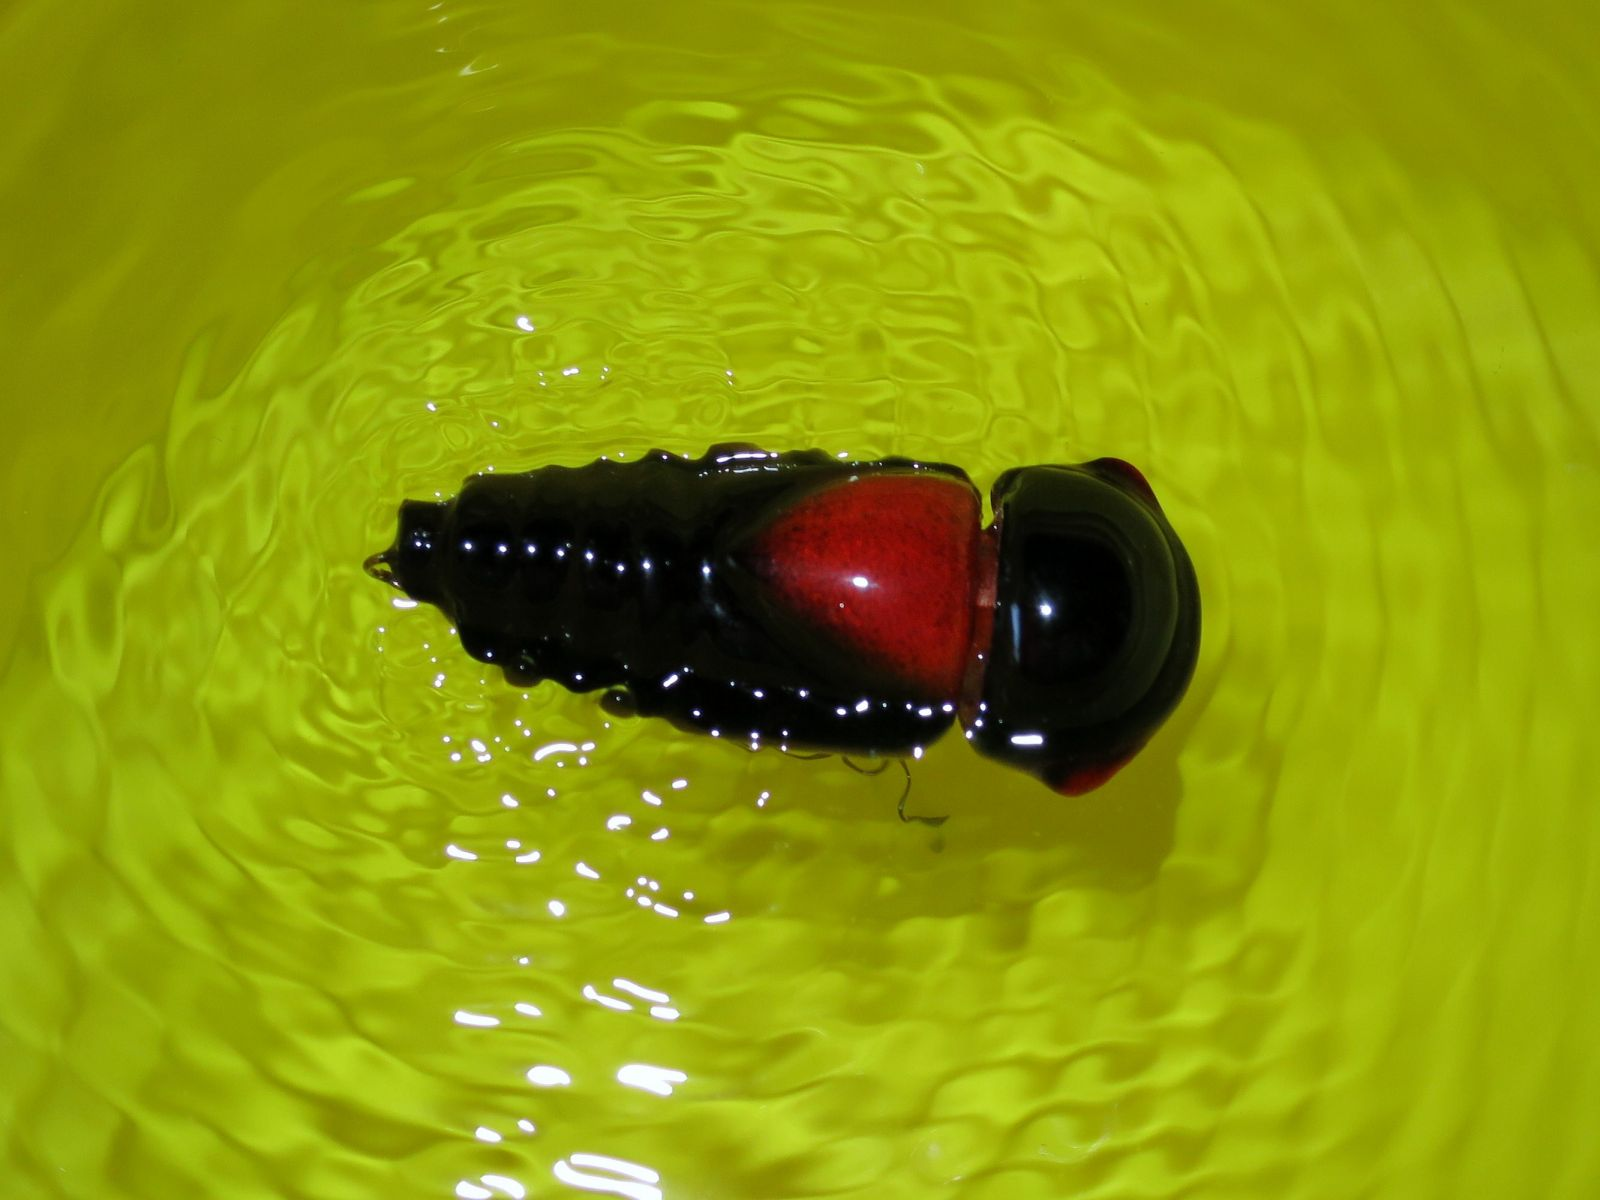 Battery Powered Vibrating Cicada in the water